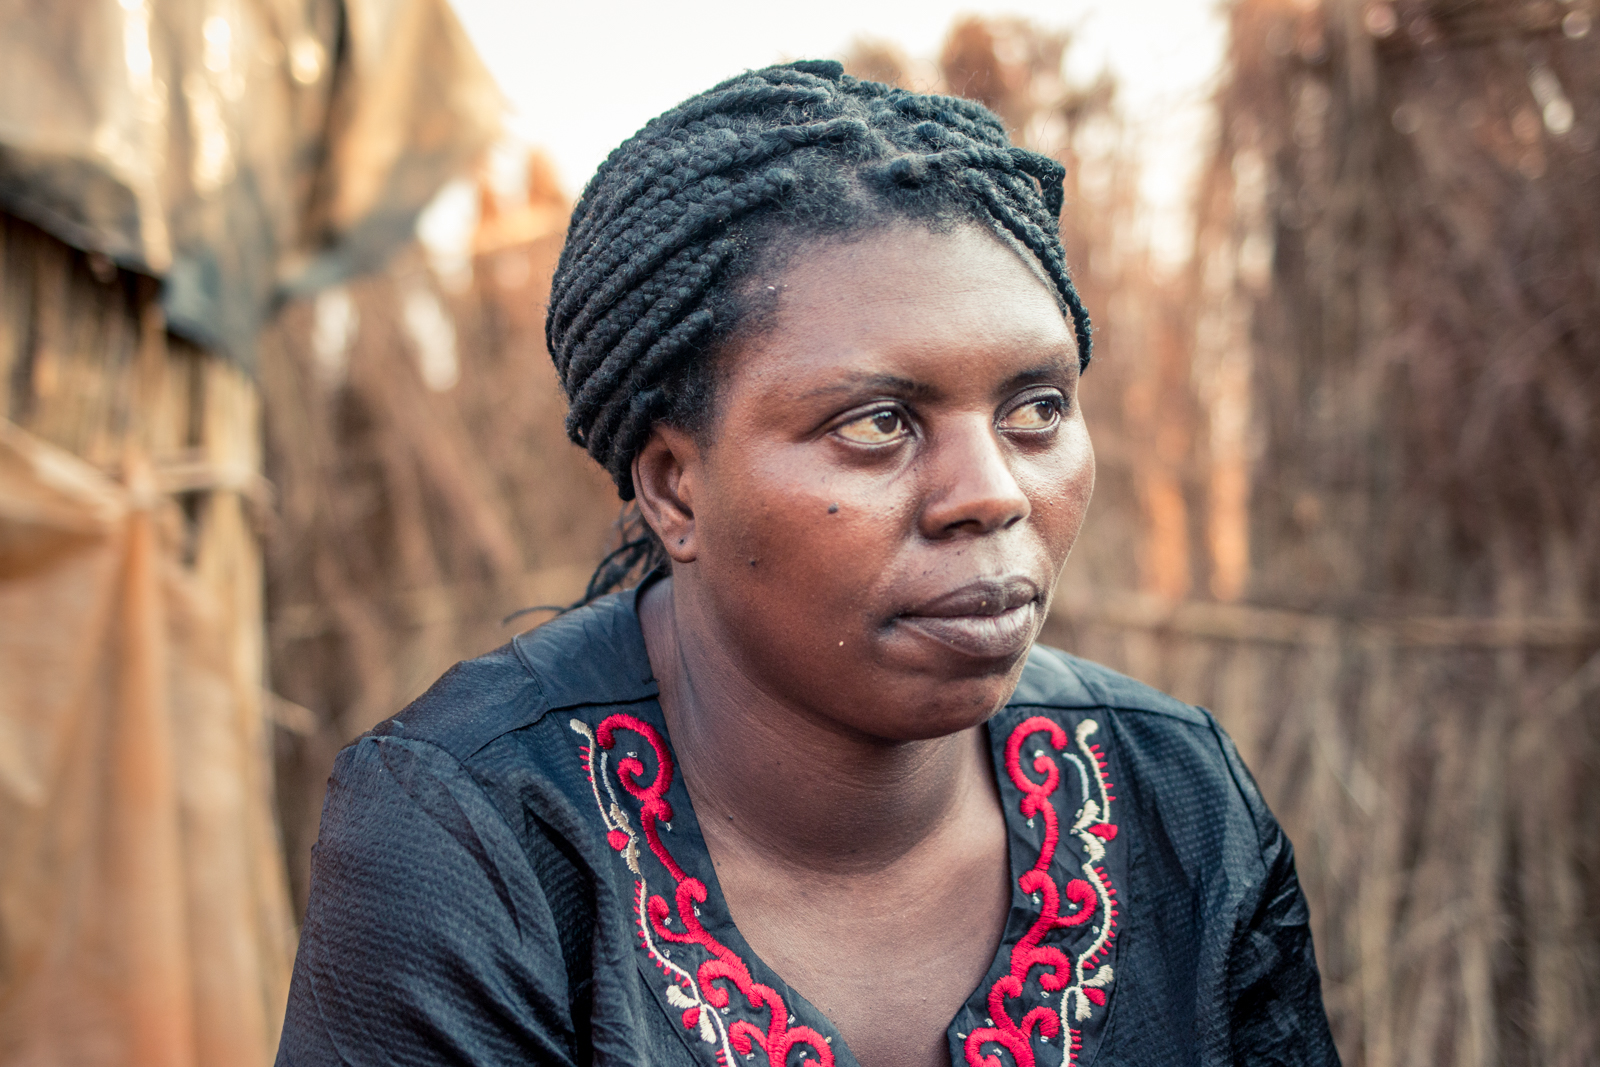 ZIMBABWE: [Home Visit] Patricia is a 37 year old single mother. She has 2 children a 15 year old daughter who has to live with and be taken care of by her brother in town, and a 21 year old son with cerebral palsy..